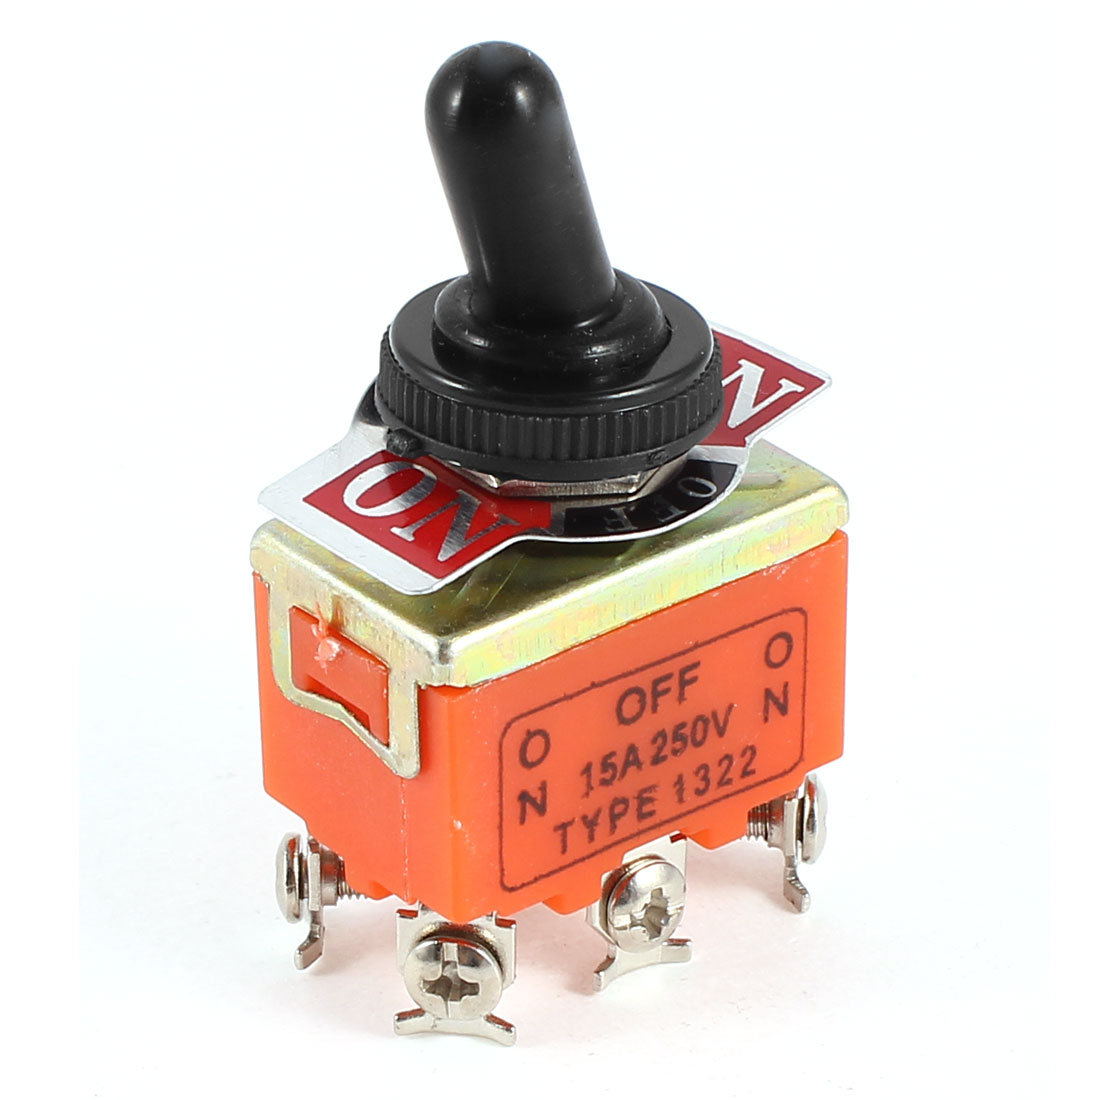 AC 15A 250V ON/OFF/ON 3 Position DPDT Latching Action Toggle Switch